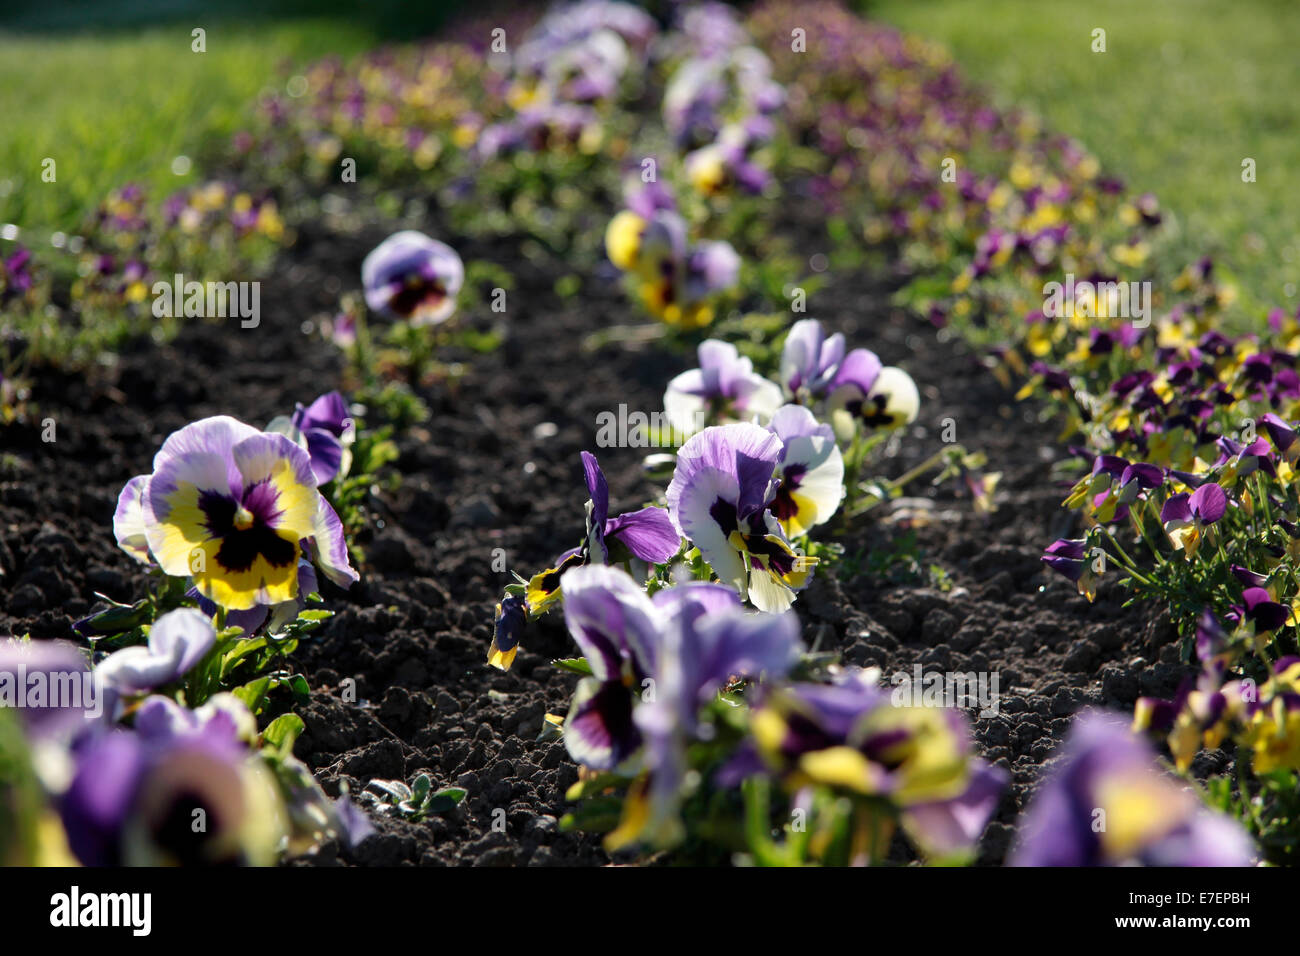 Flower bed with pansies in park in April - Stock Image